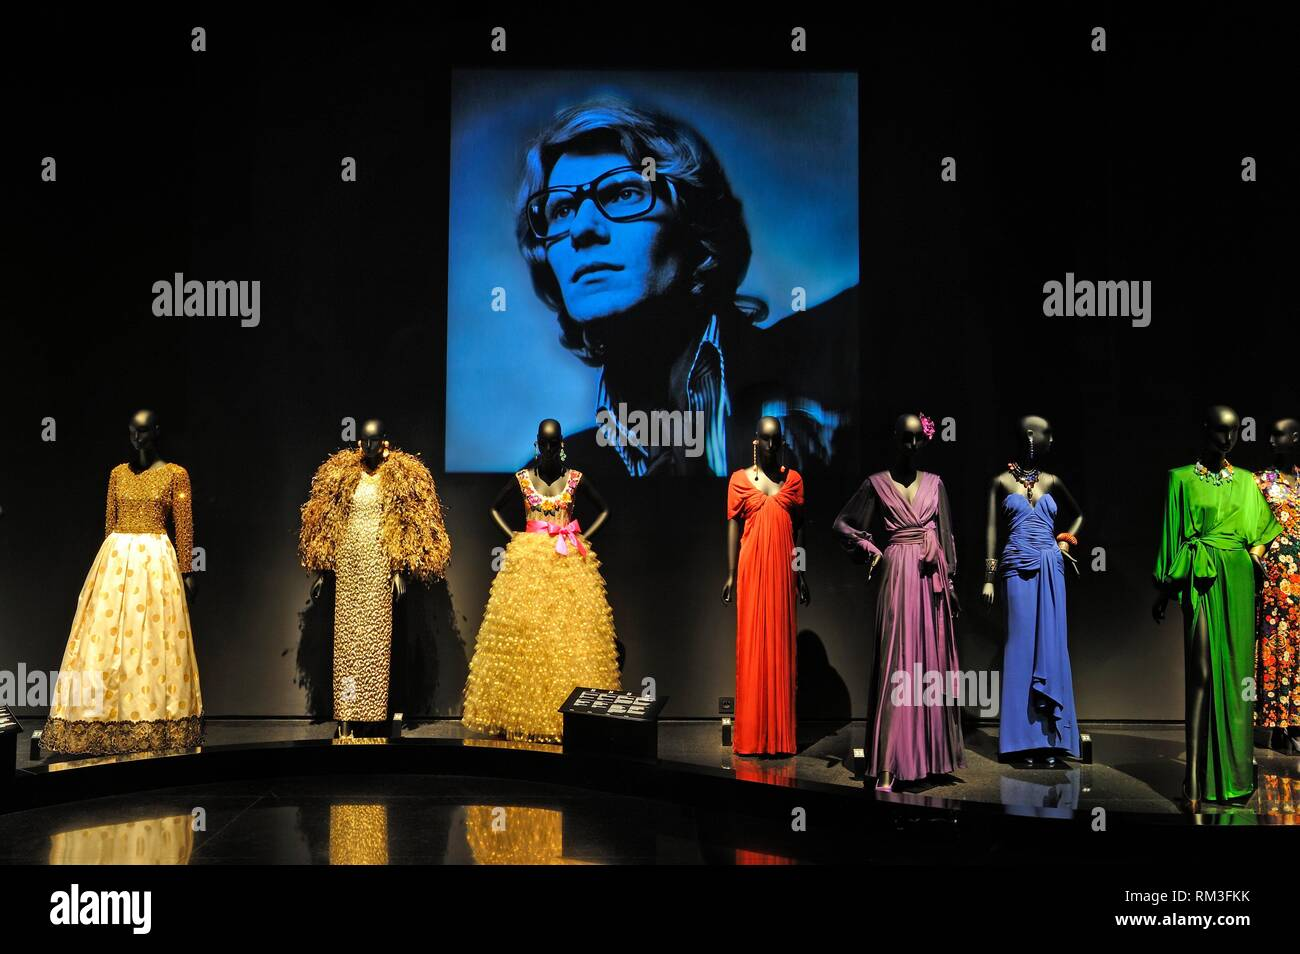 the Yves Saint Laurent exhibition hall (Exhibition design by Christophe Martin) at the Musee Yves Saint-Laurent, Marrakesh, Morocco, North Africa. - Stock Image